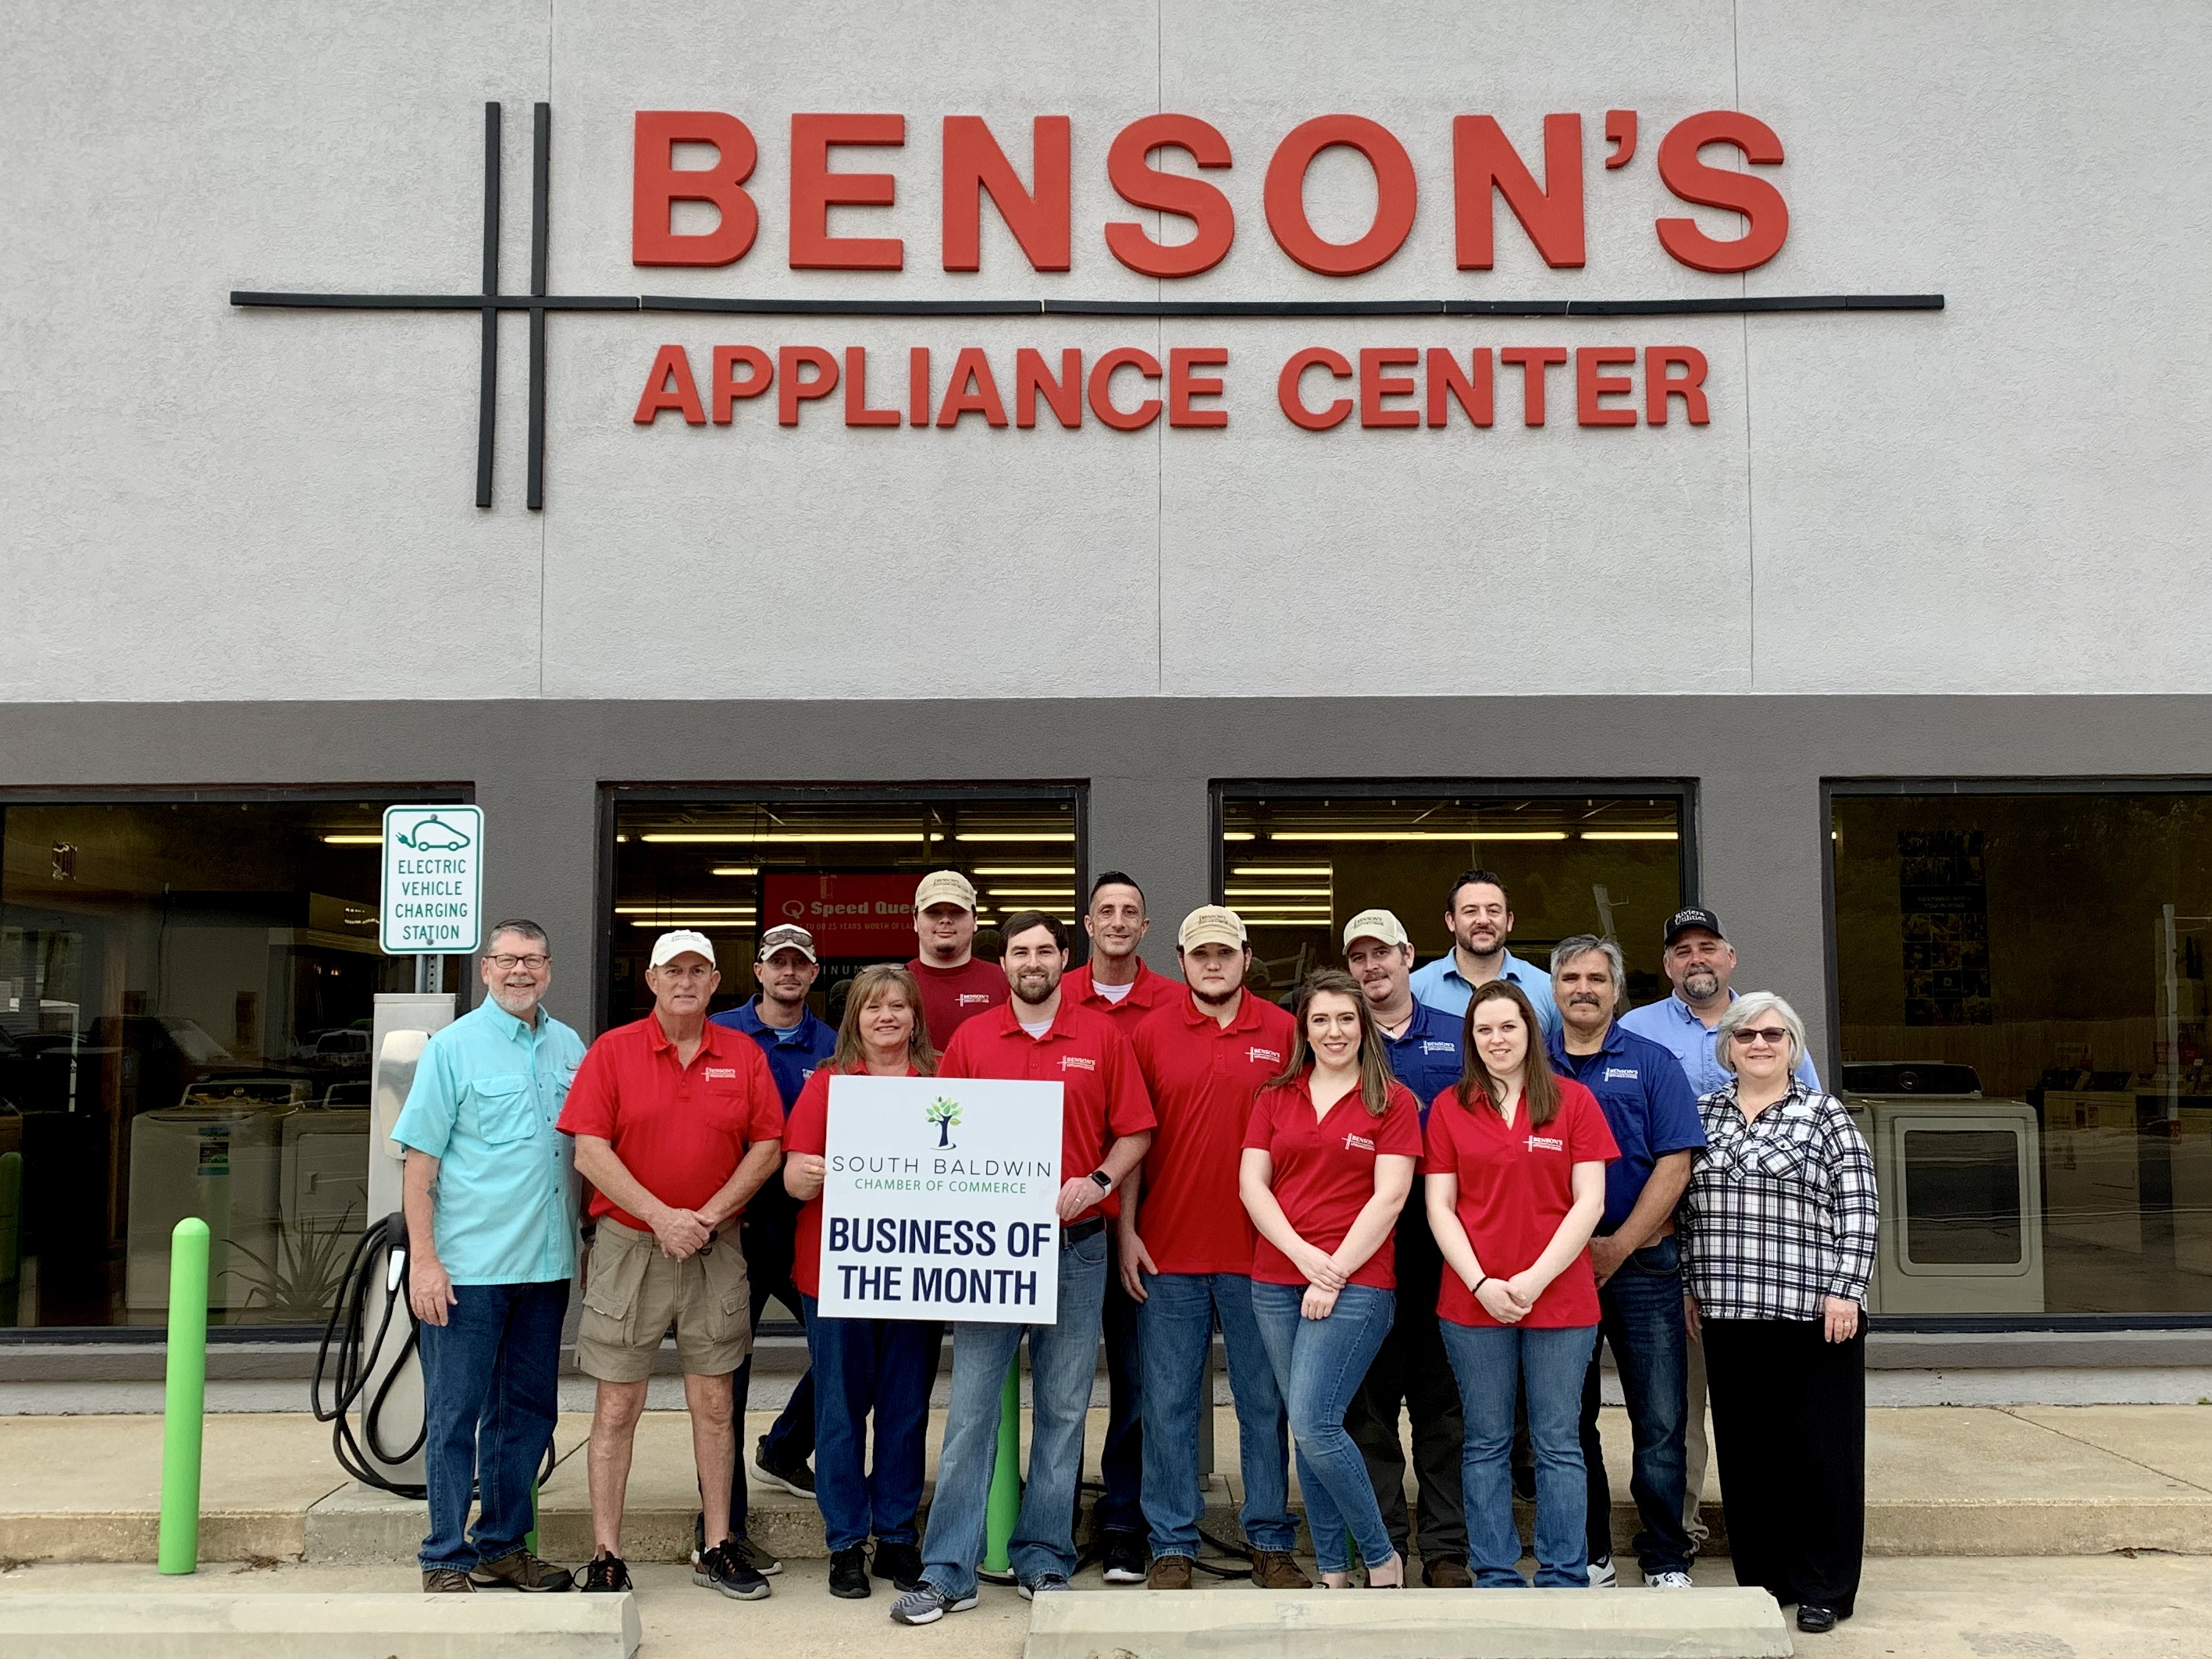 Benson's Appliance Center - Our Business of the Month March 2020